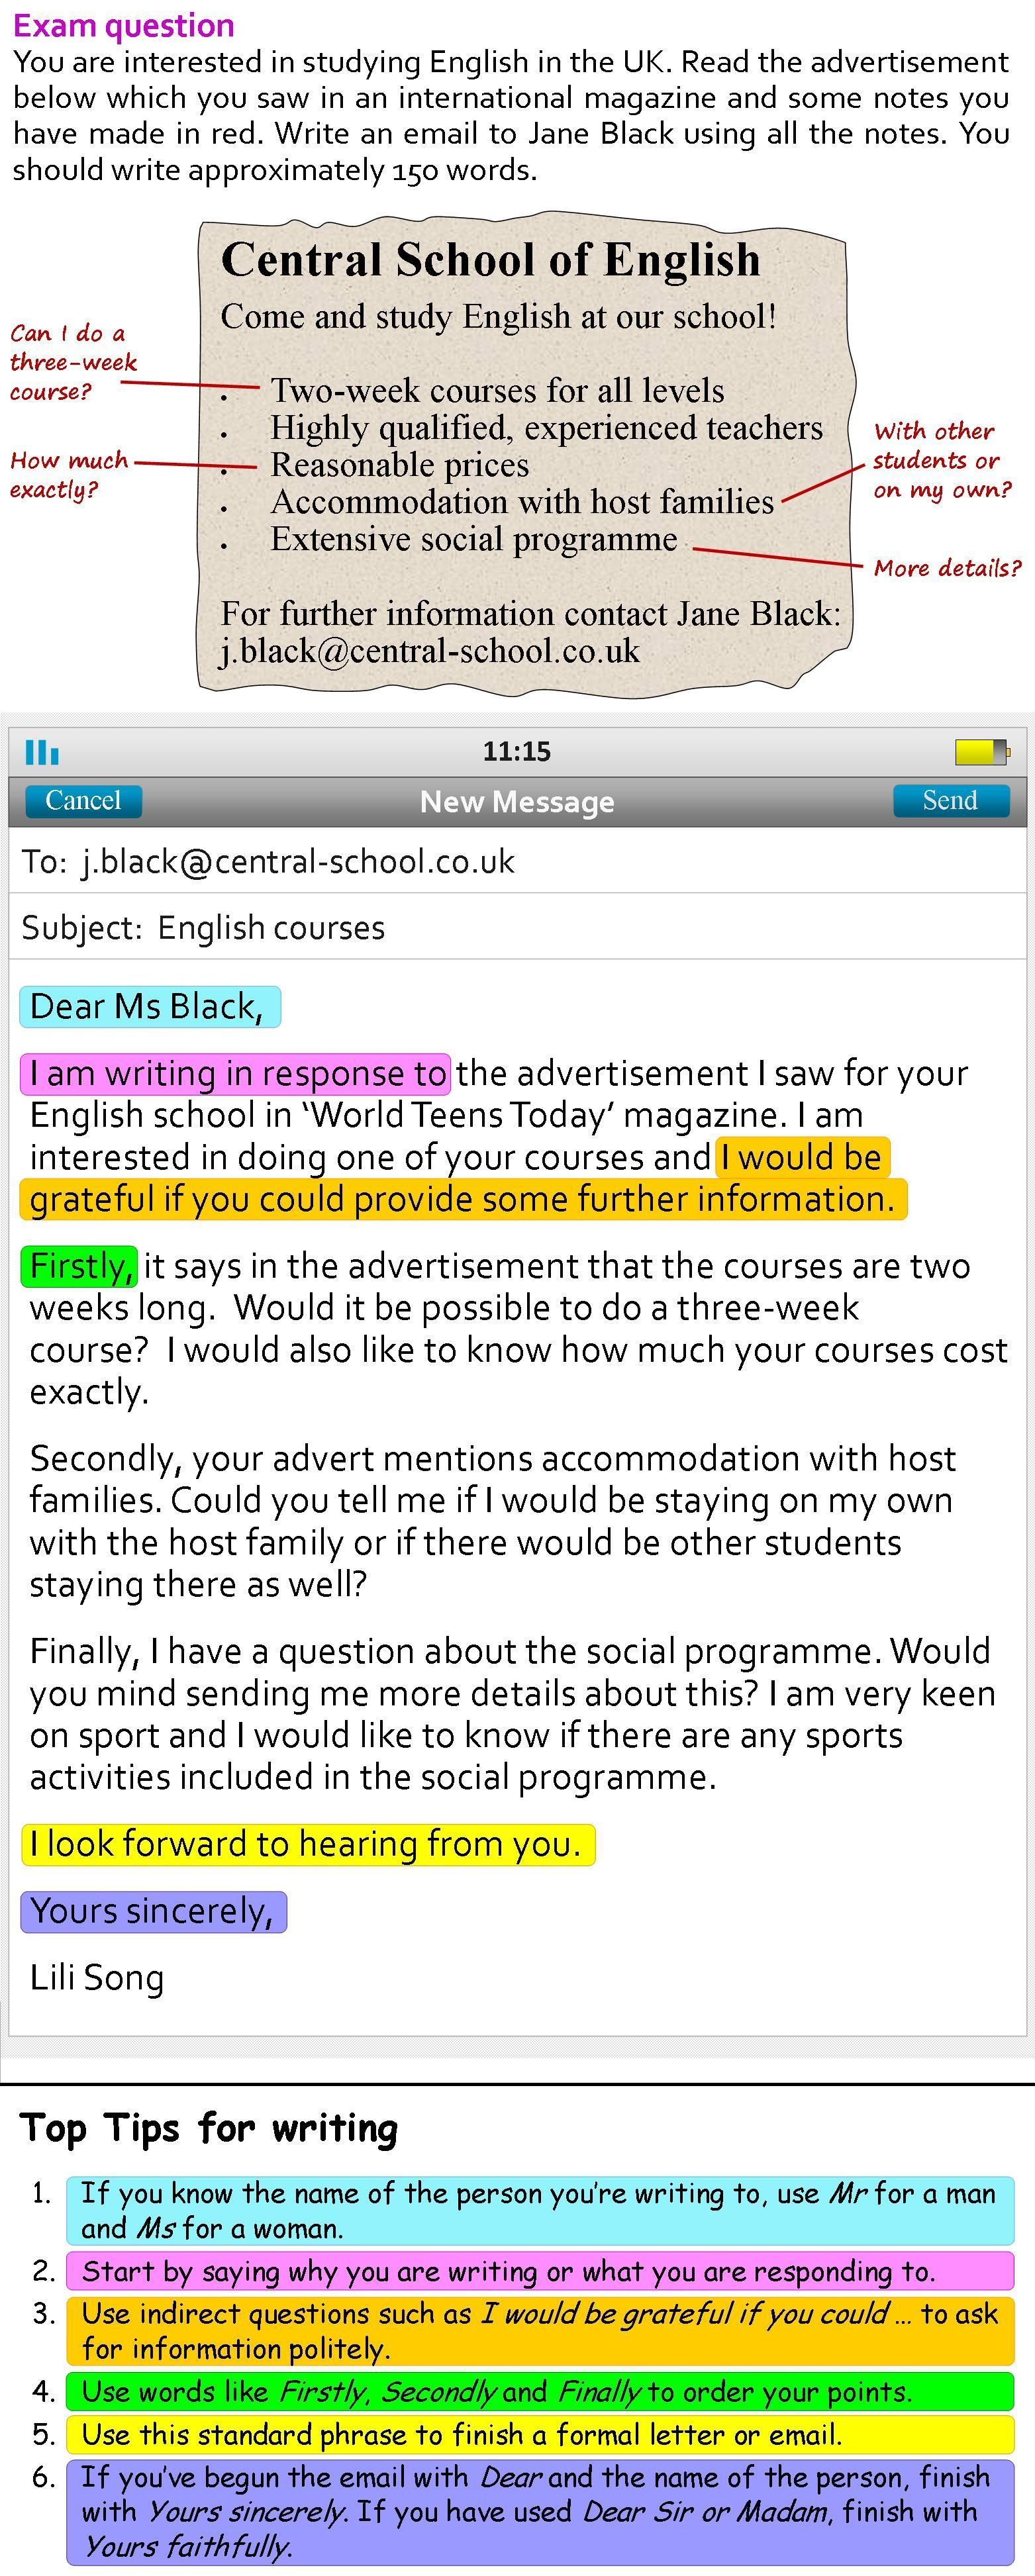 Check Your Writing Gap Fill Indirect Questions Letter Business Friendly Forwards Formal Letters Formal Letter Writing English Writing English Writing Skills